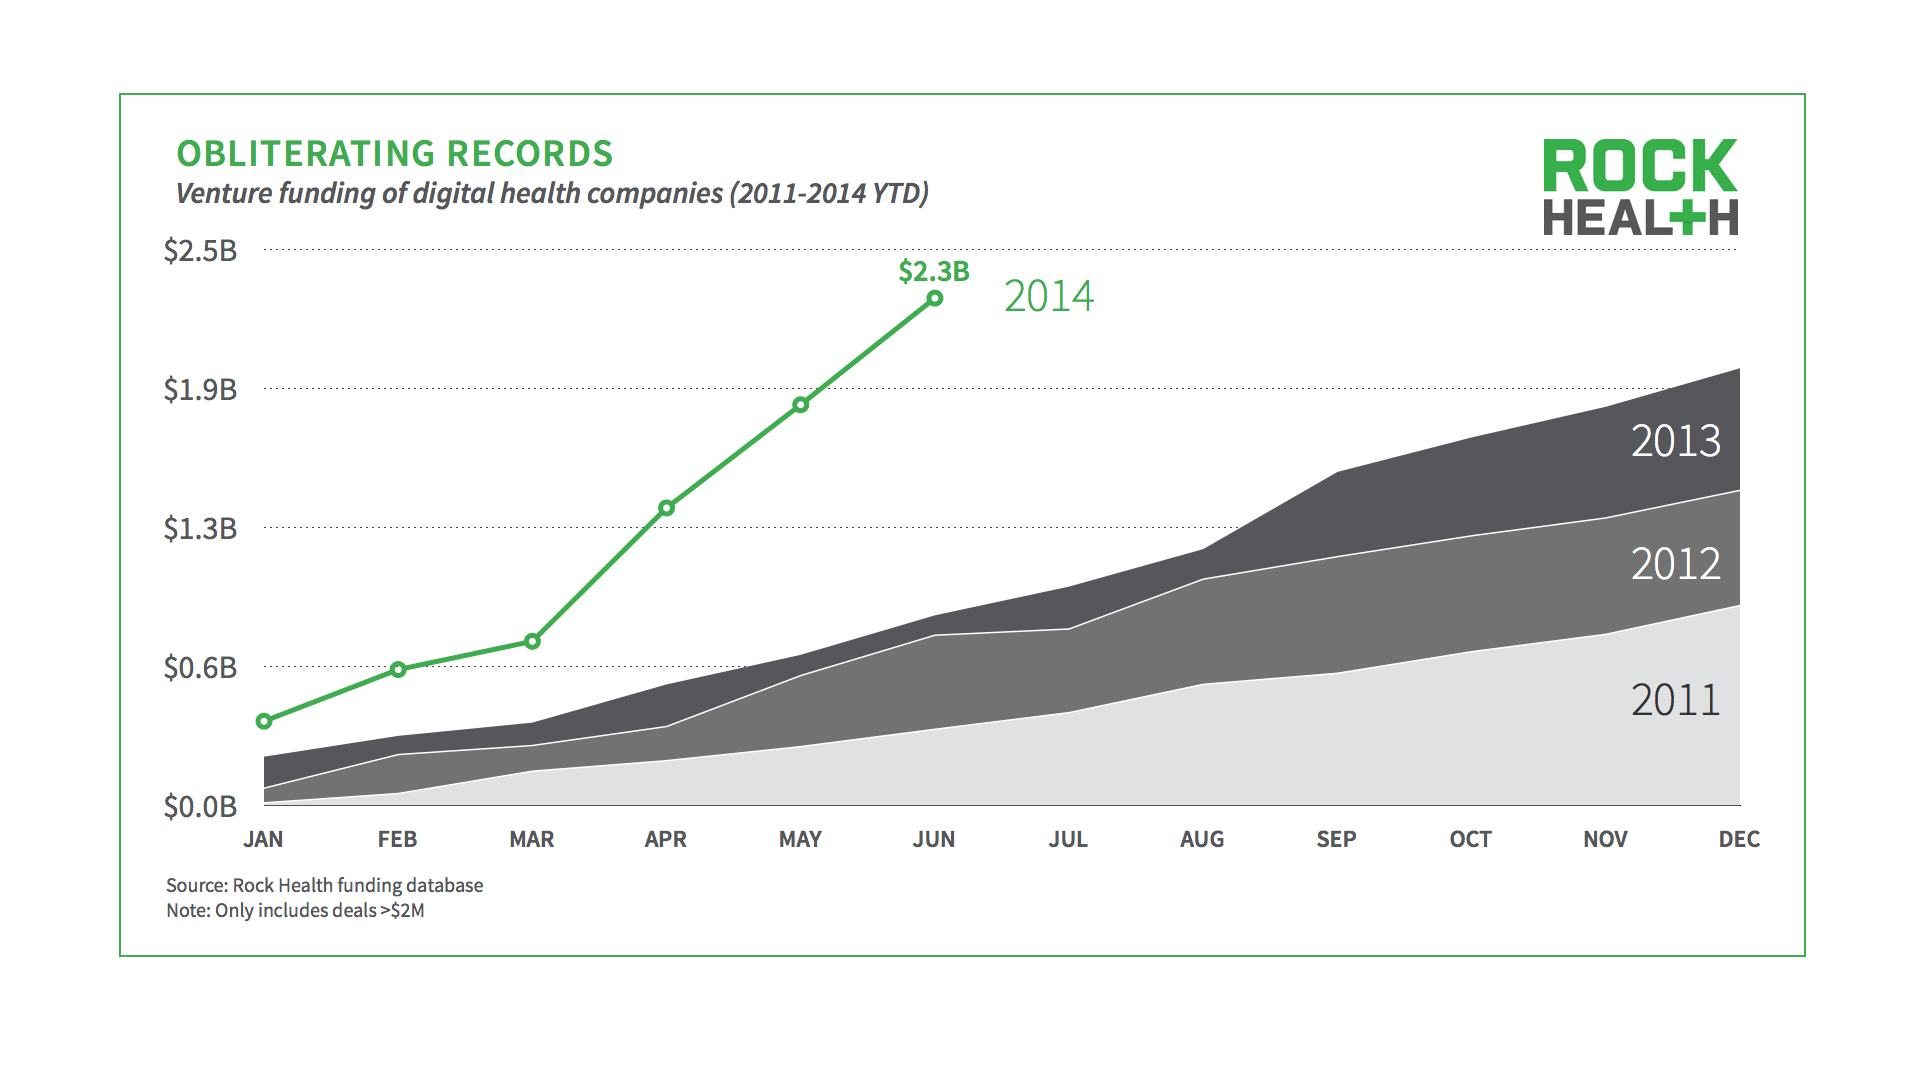 Digital health on fire: $2.2B invested already tops last year's total